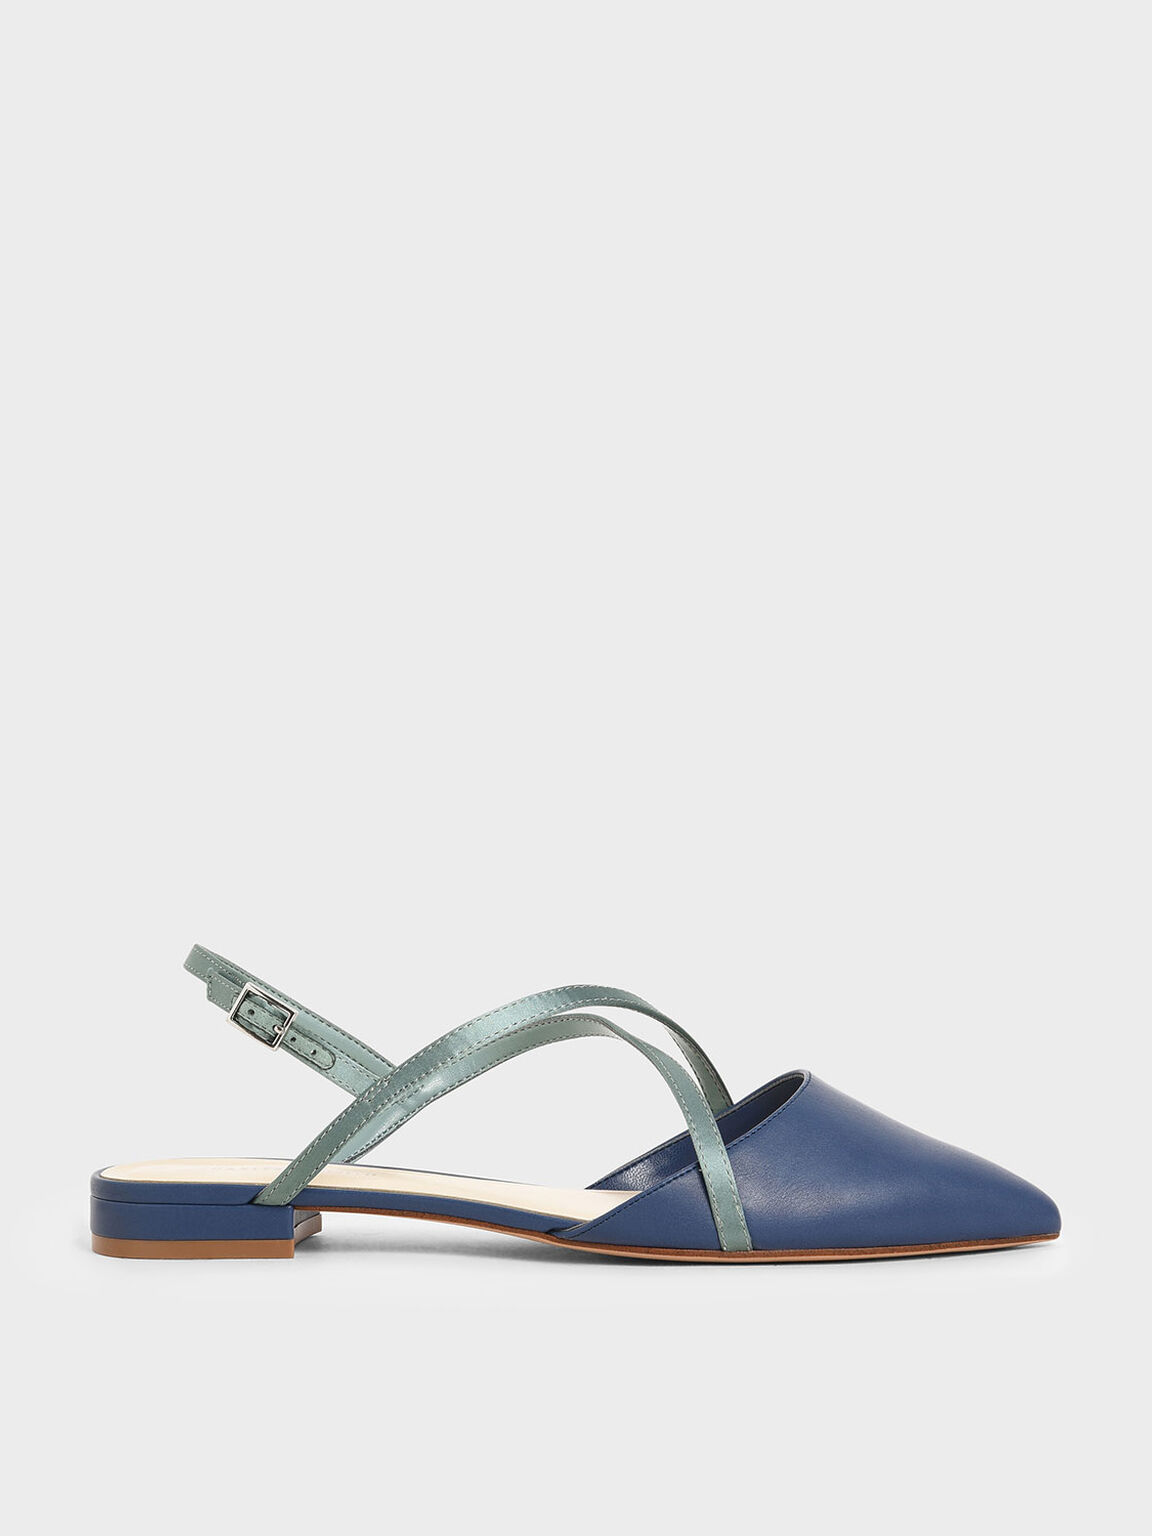 Satin Criss Cross Strap Flats, Blue, hi-res